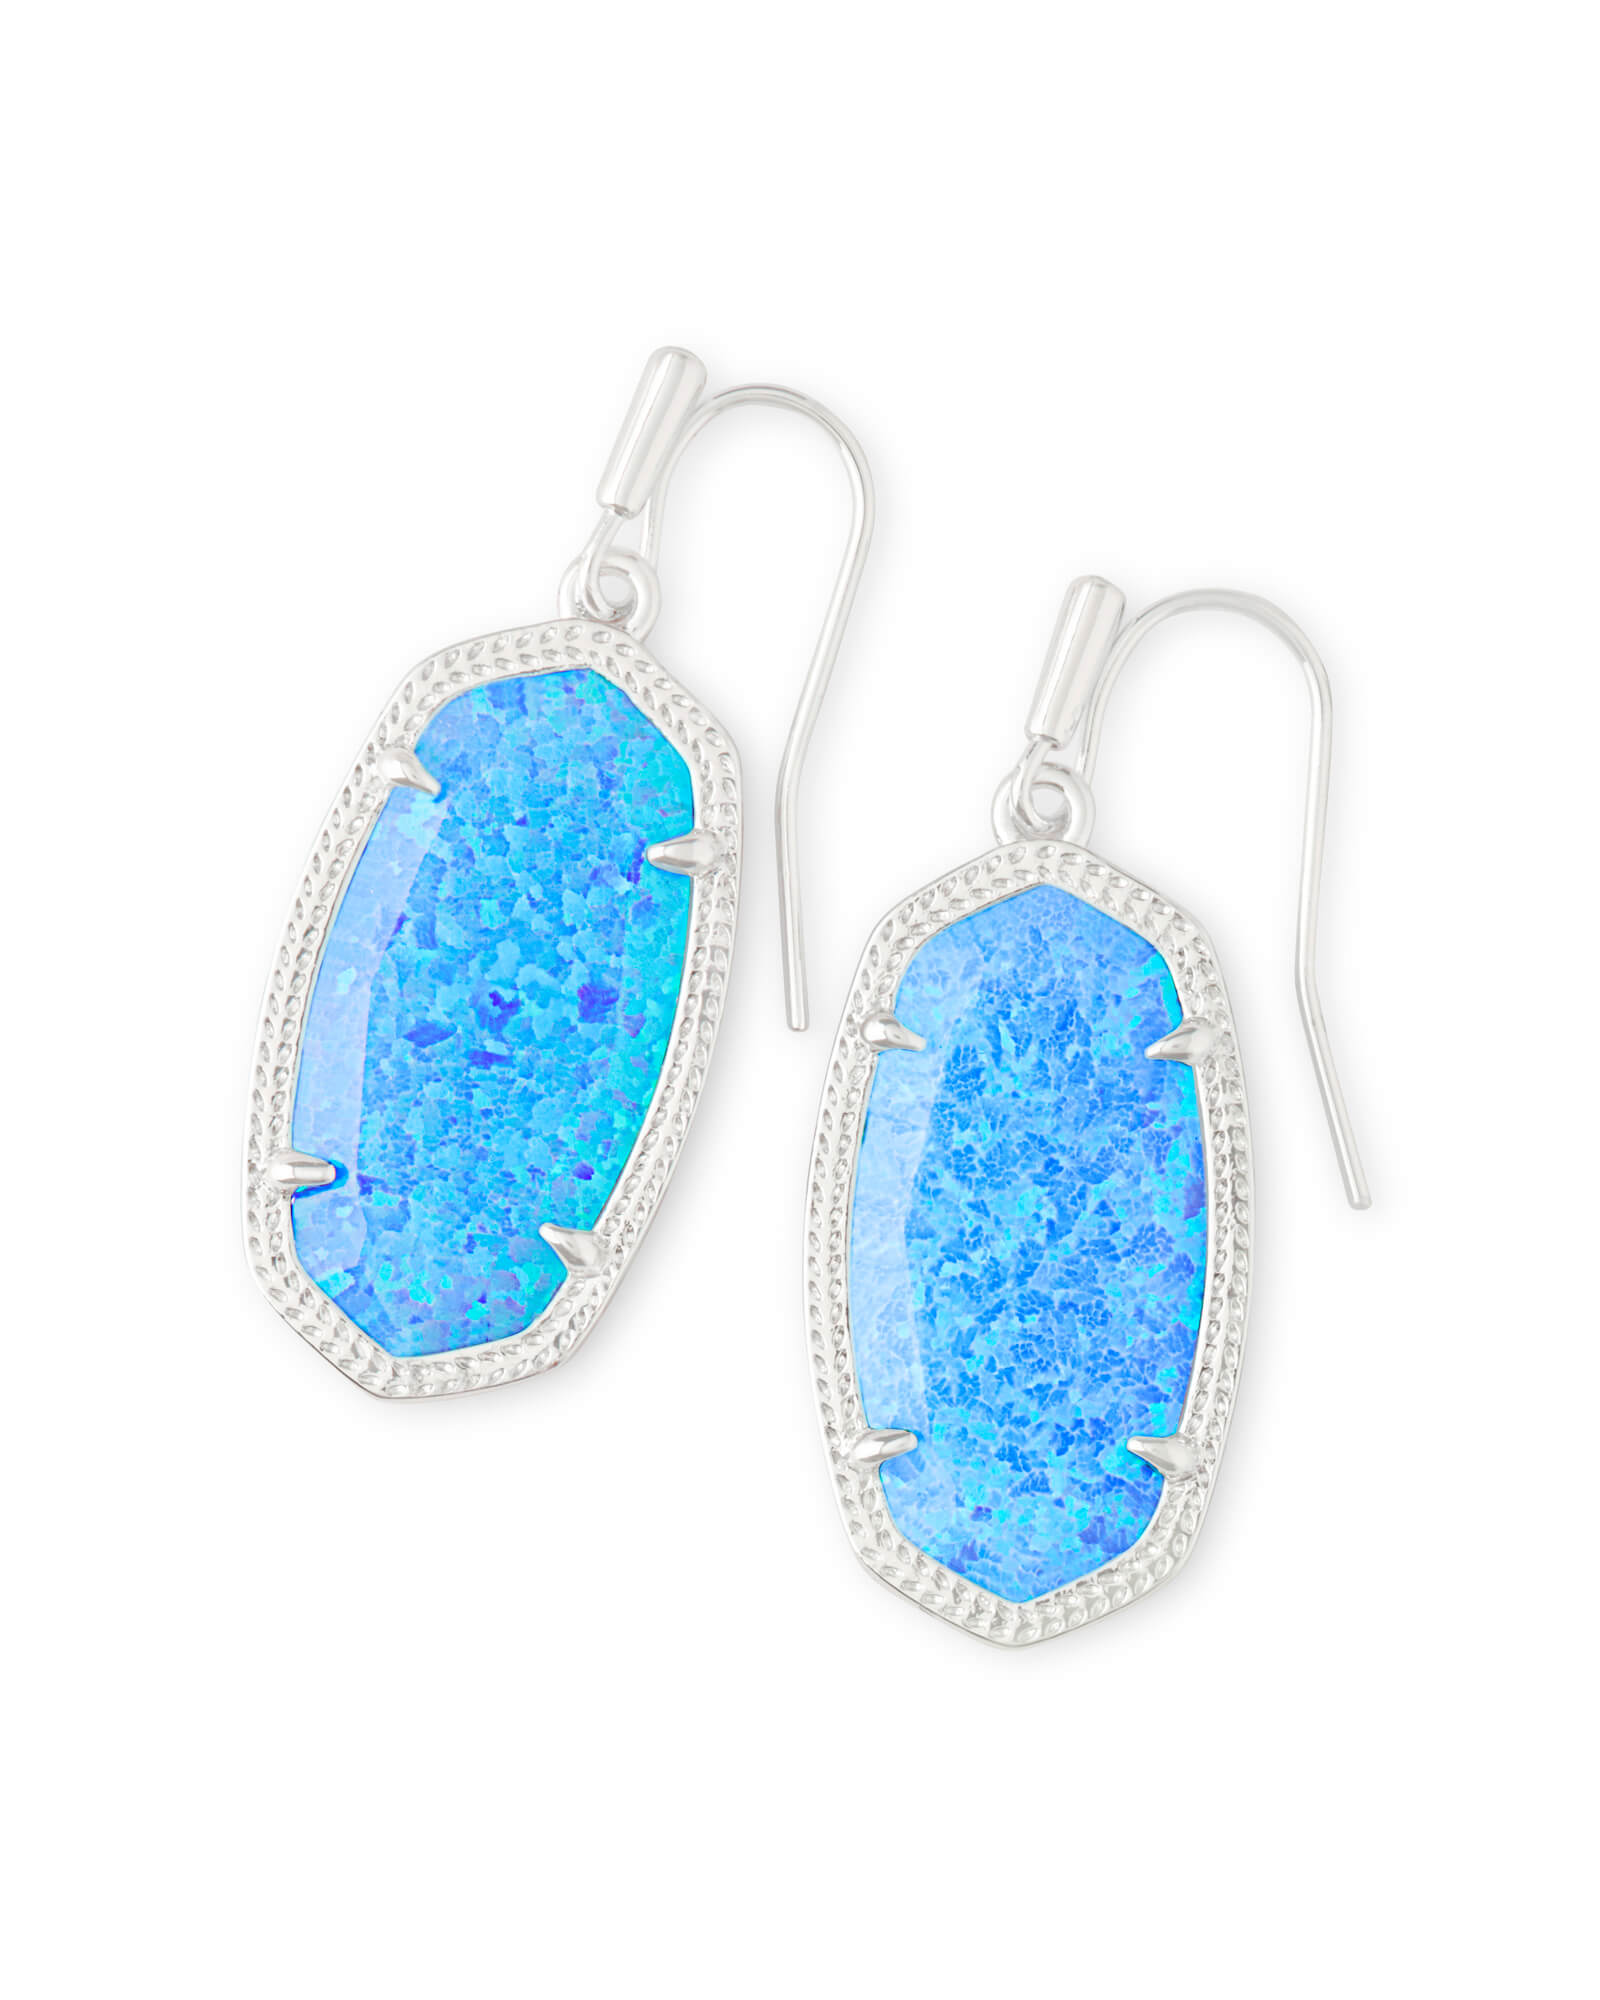 Dani Silver Drop Earrings in Ocean Kyocera Opal